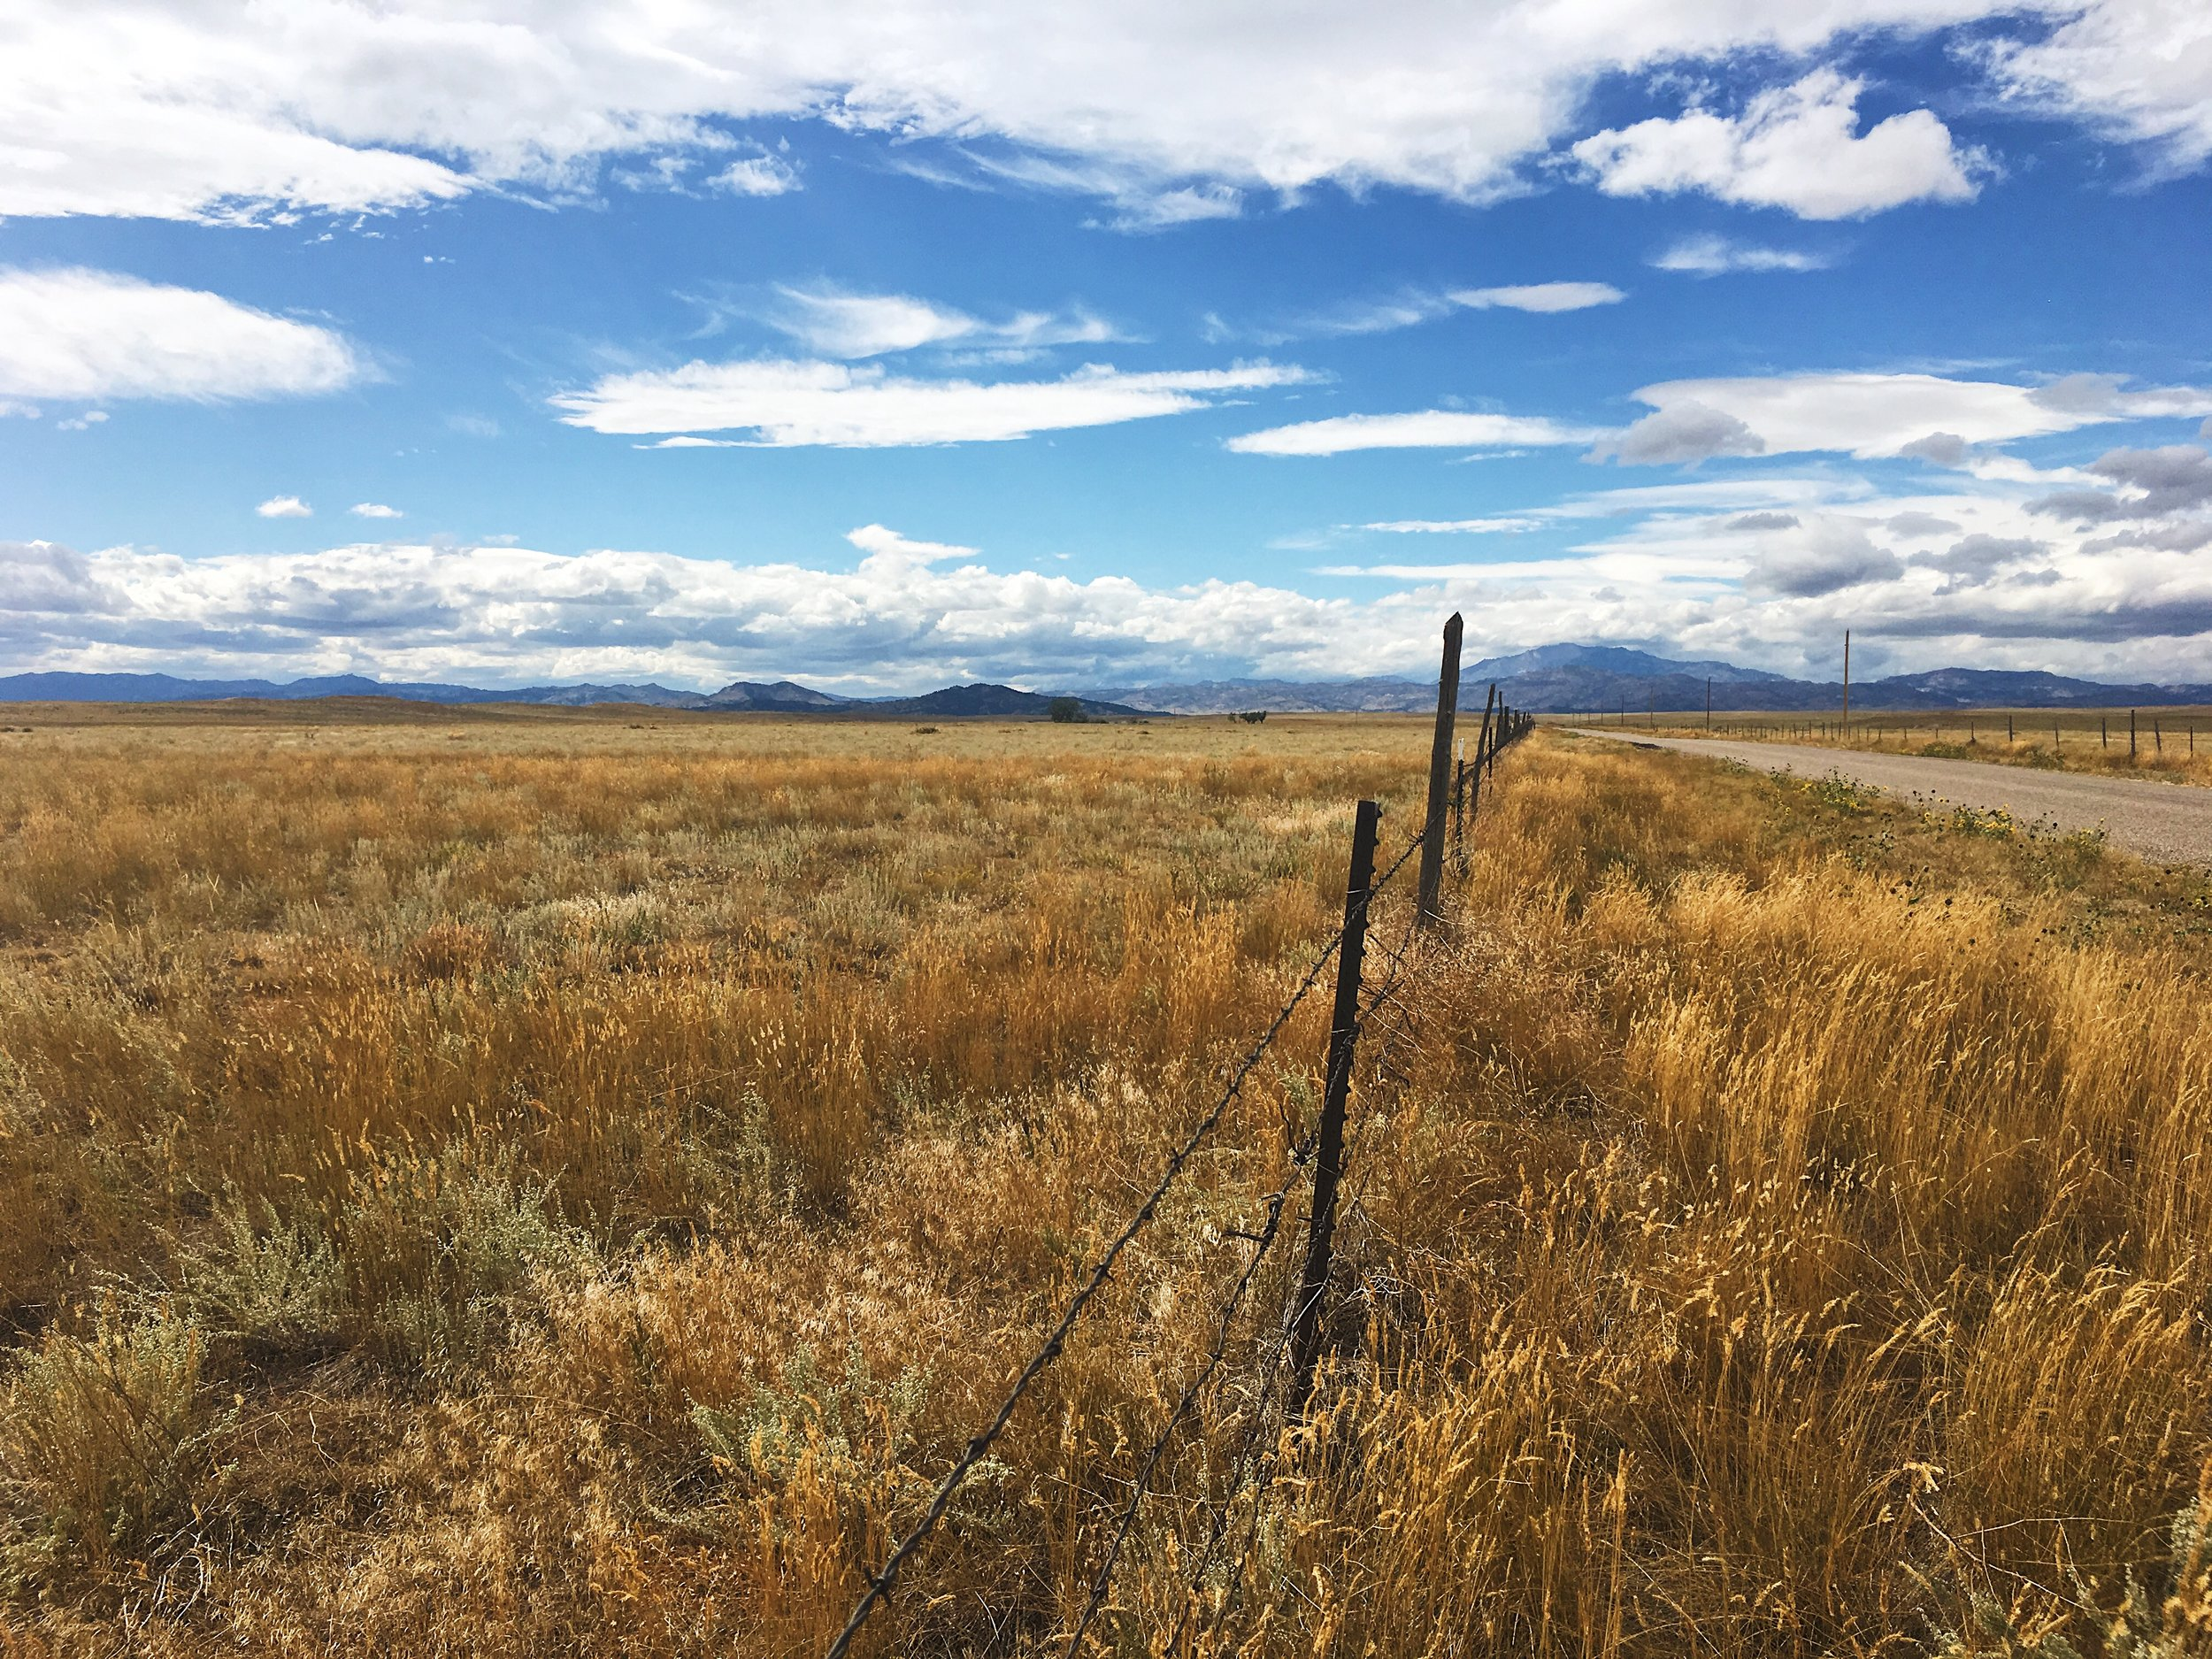 A far-off view of the Laramie Mountains in Wyoming, a bit north of Medicine Bow National Forest and Rocky Mountain National Park.  Photo by Scott Stone